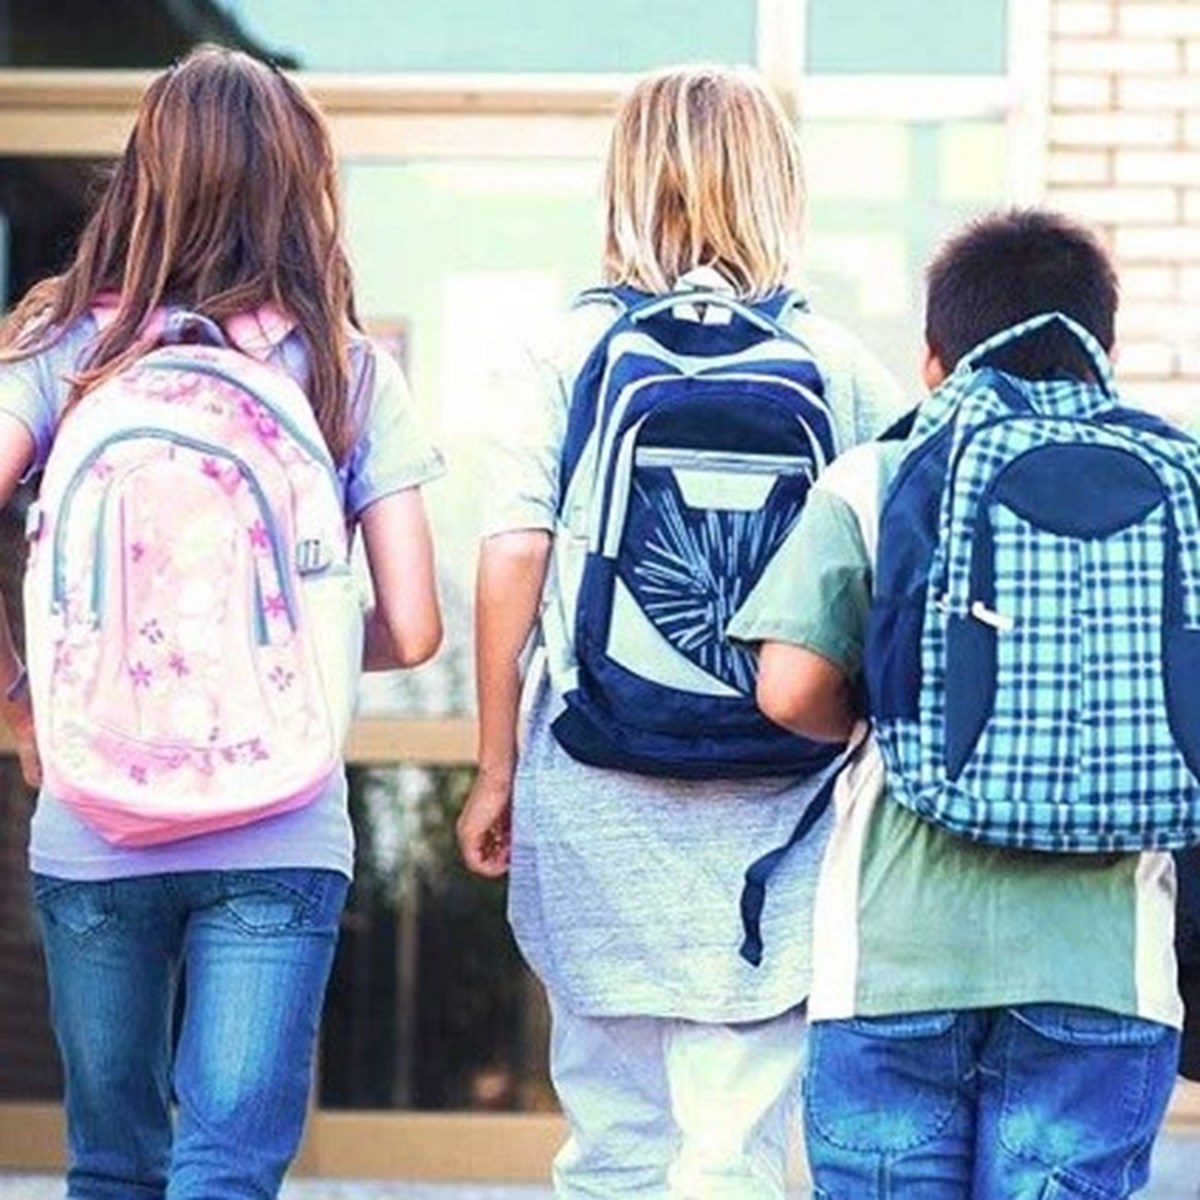 Weigh your backpack before heading off to school